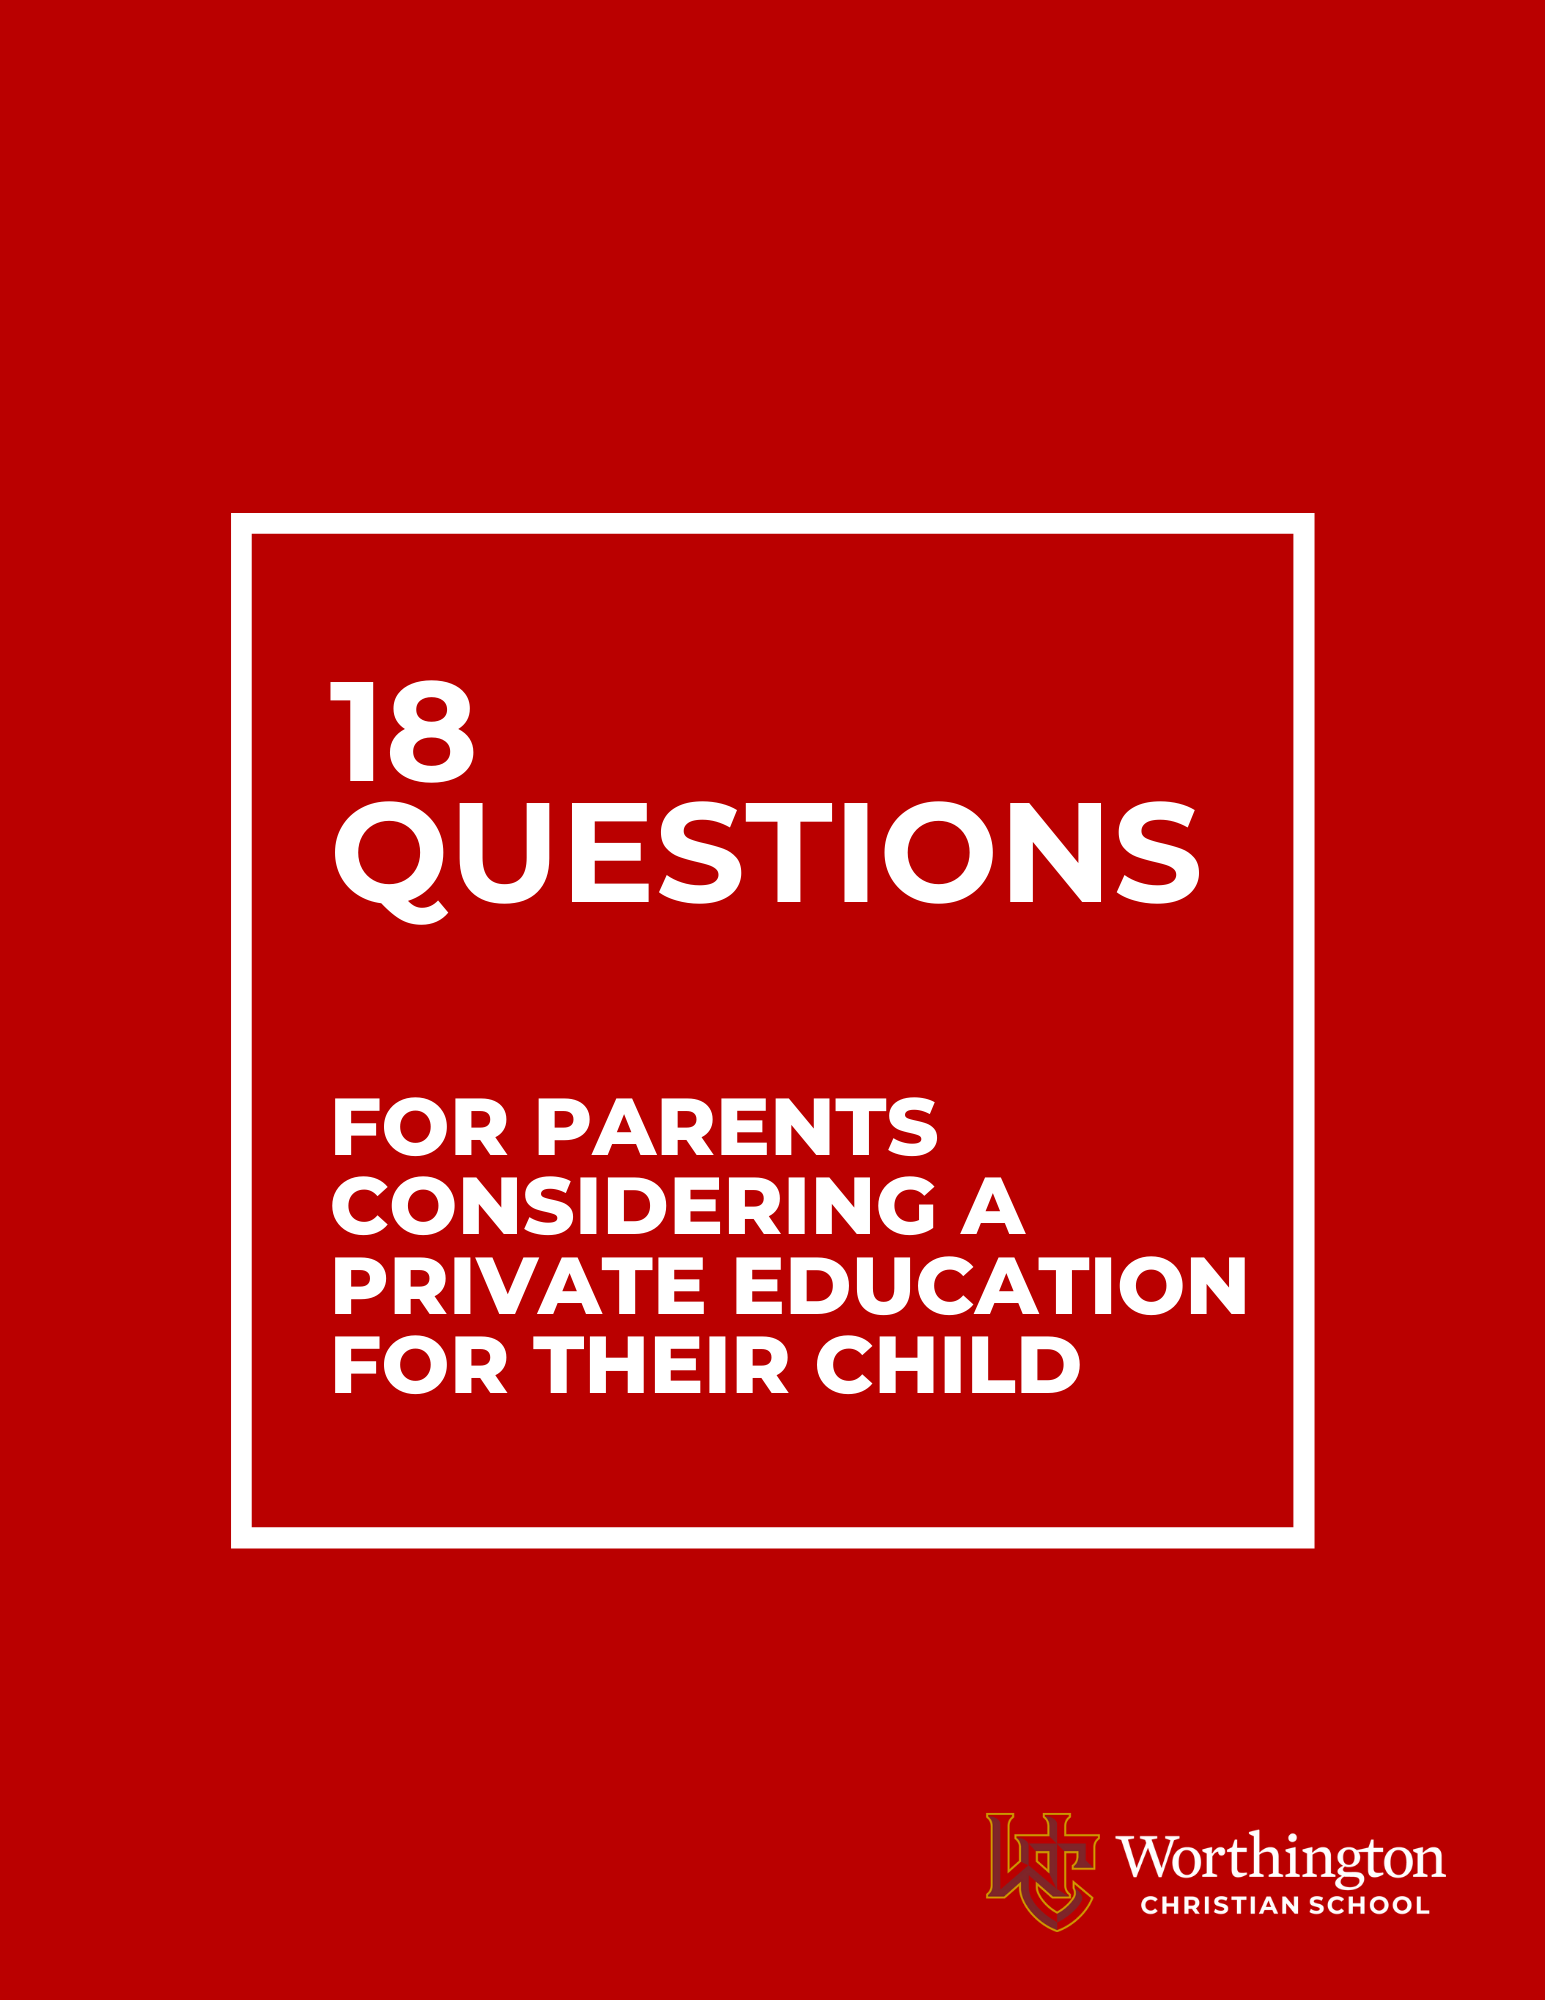 18 Questions for Parents-Updated August 2020